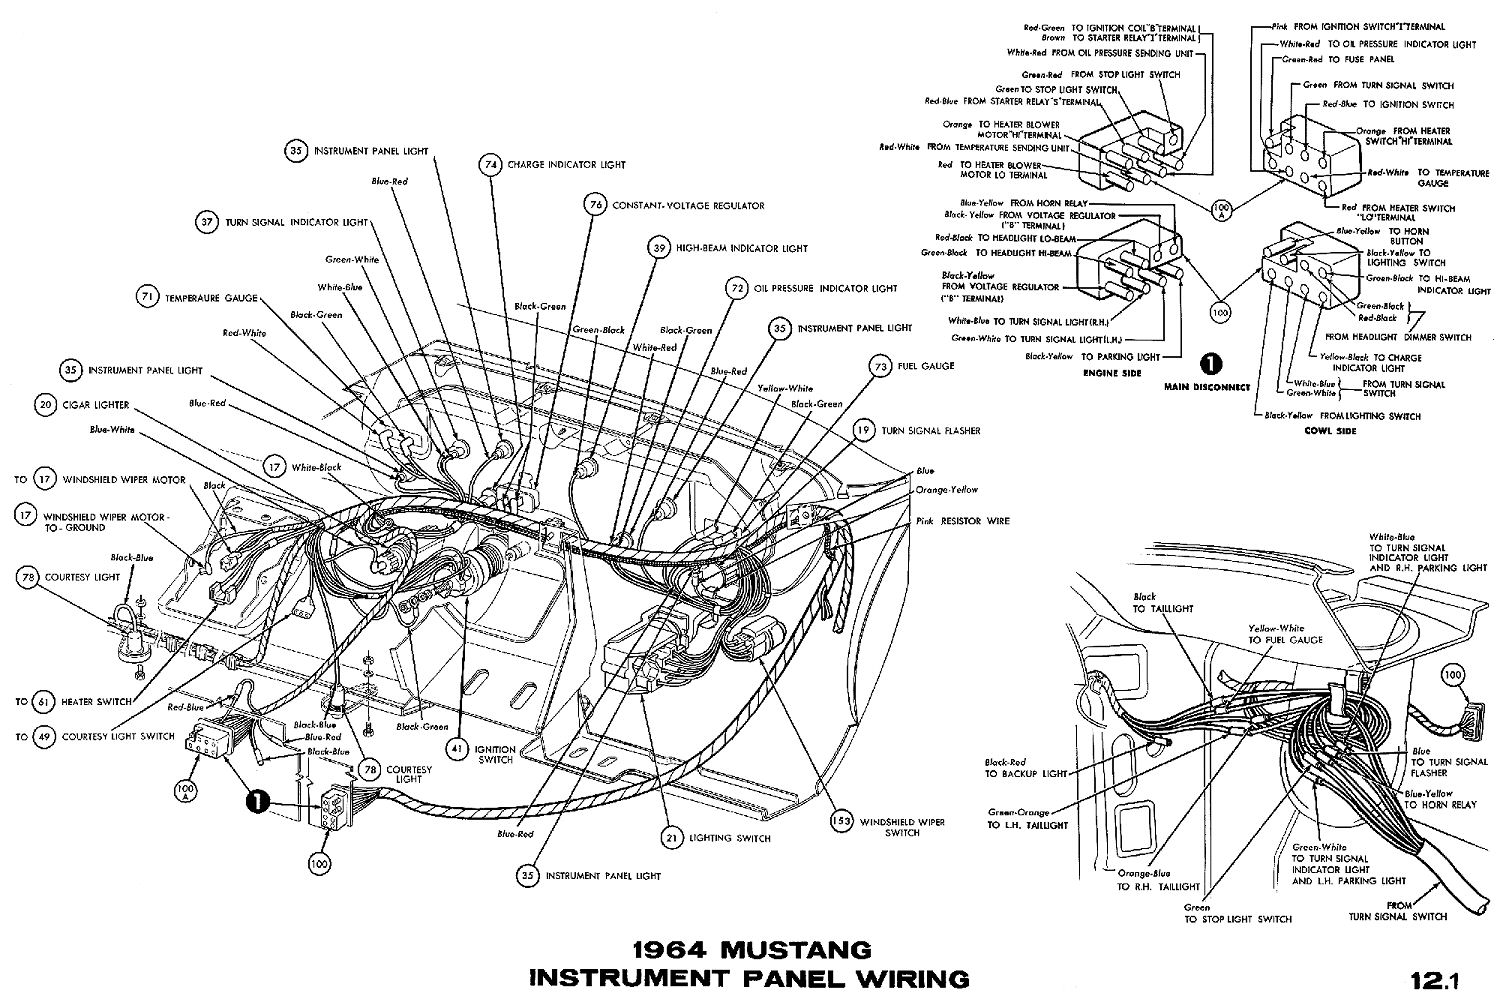 1998 Mustang 4 0 Wiring Diagram Library 1992 Schematic 1964 Diagrams Average Joe Restoration 93